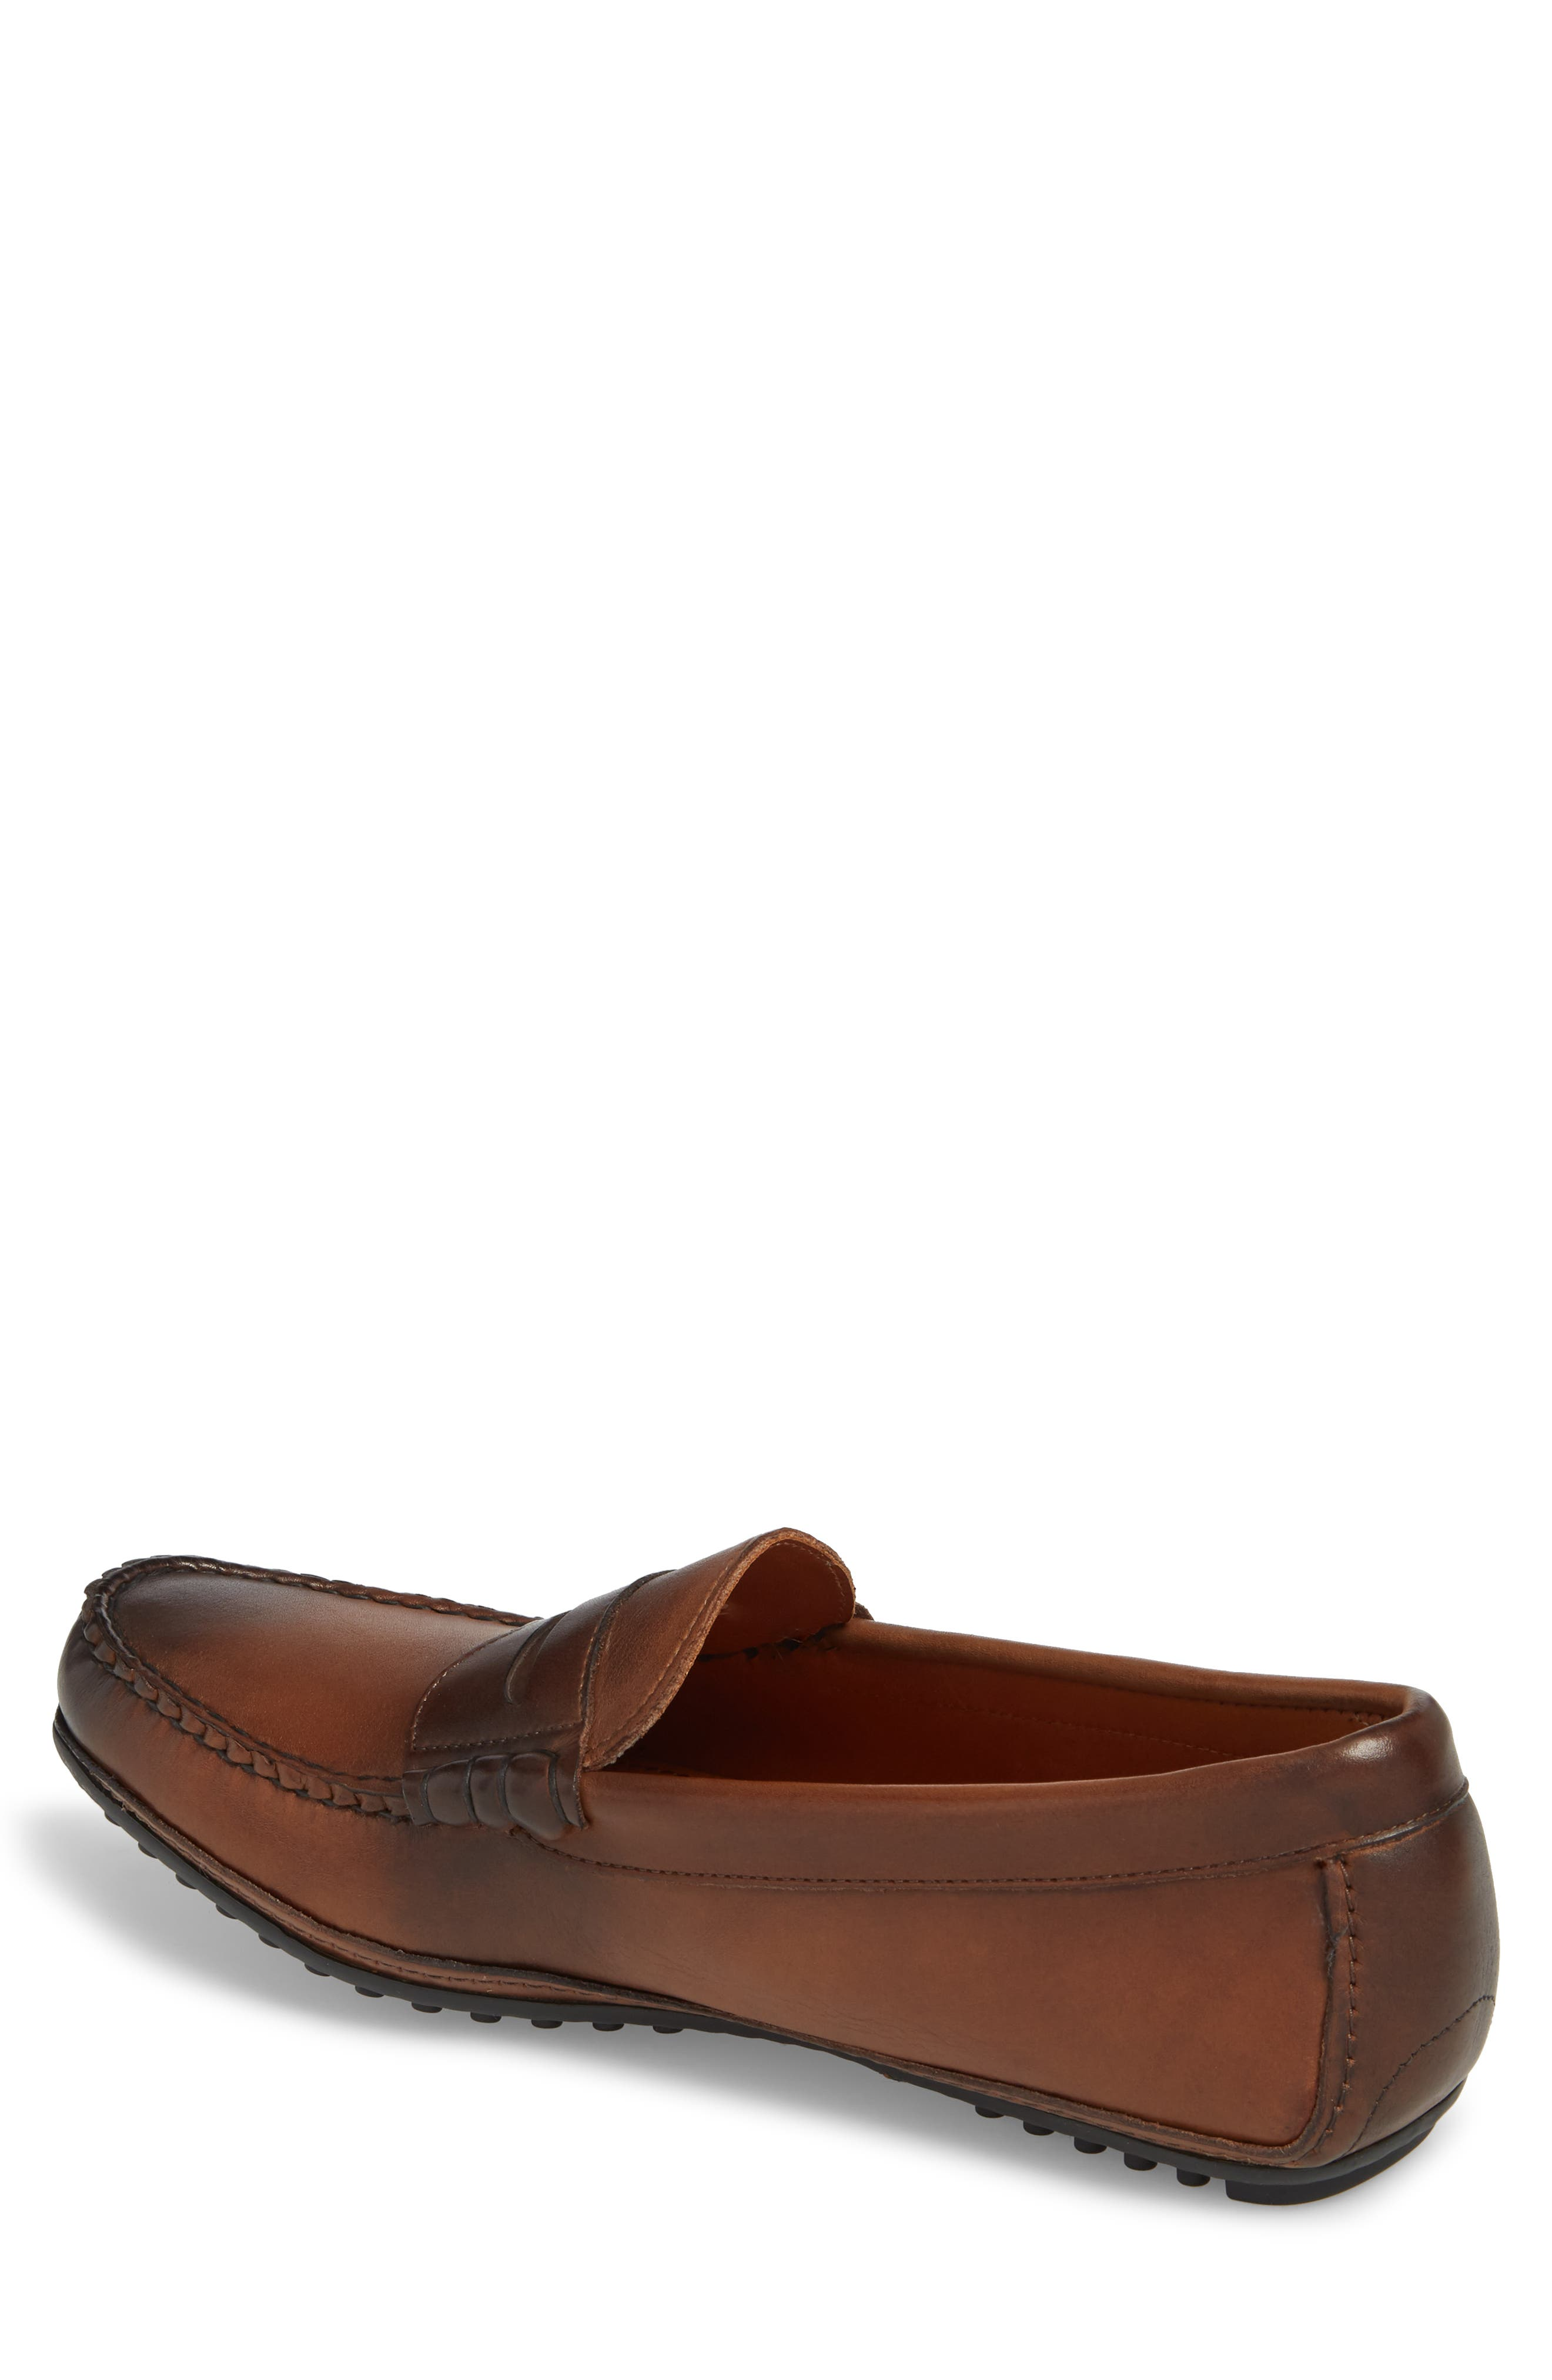 Siesta Key Penny Loafer,                             Alternate thumbnail 2, color,                             Brown Leather